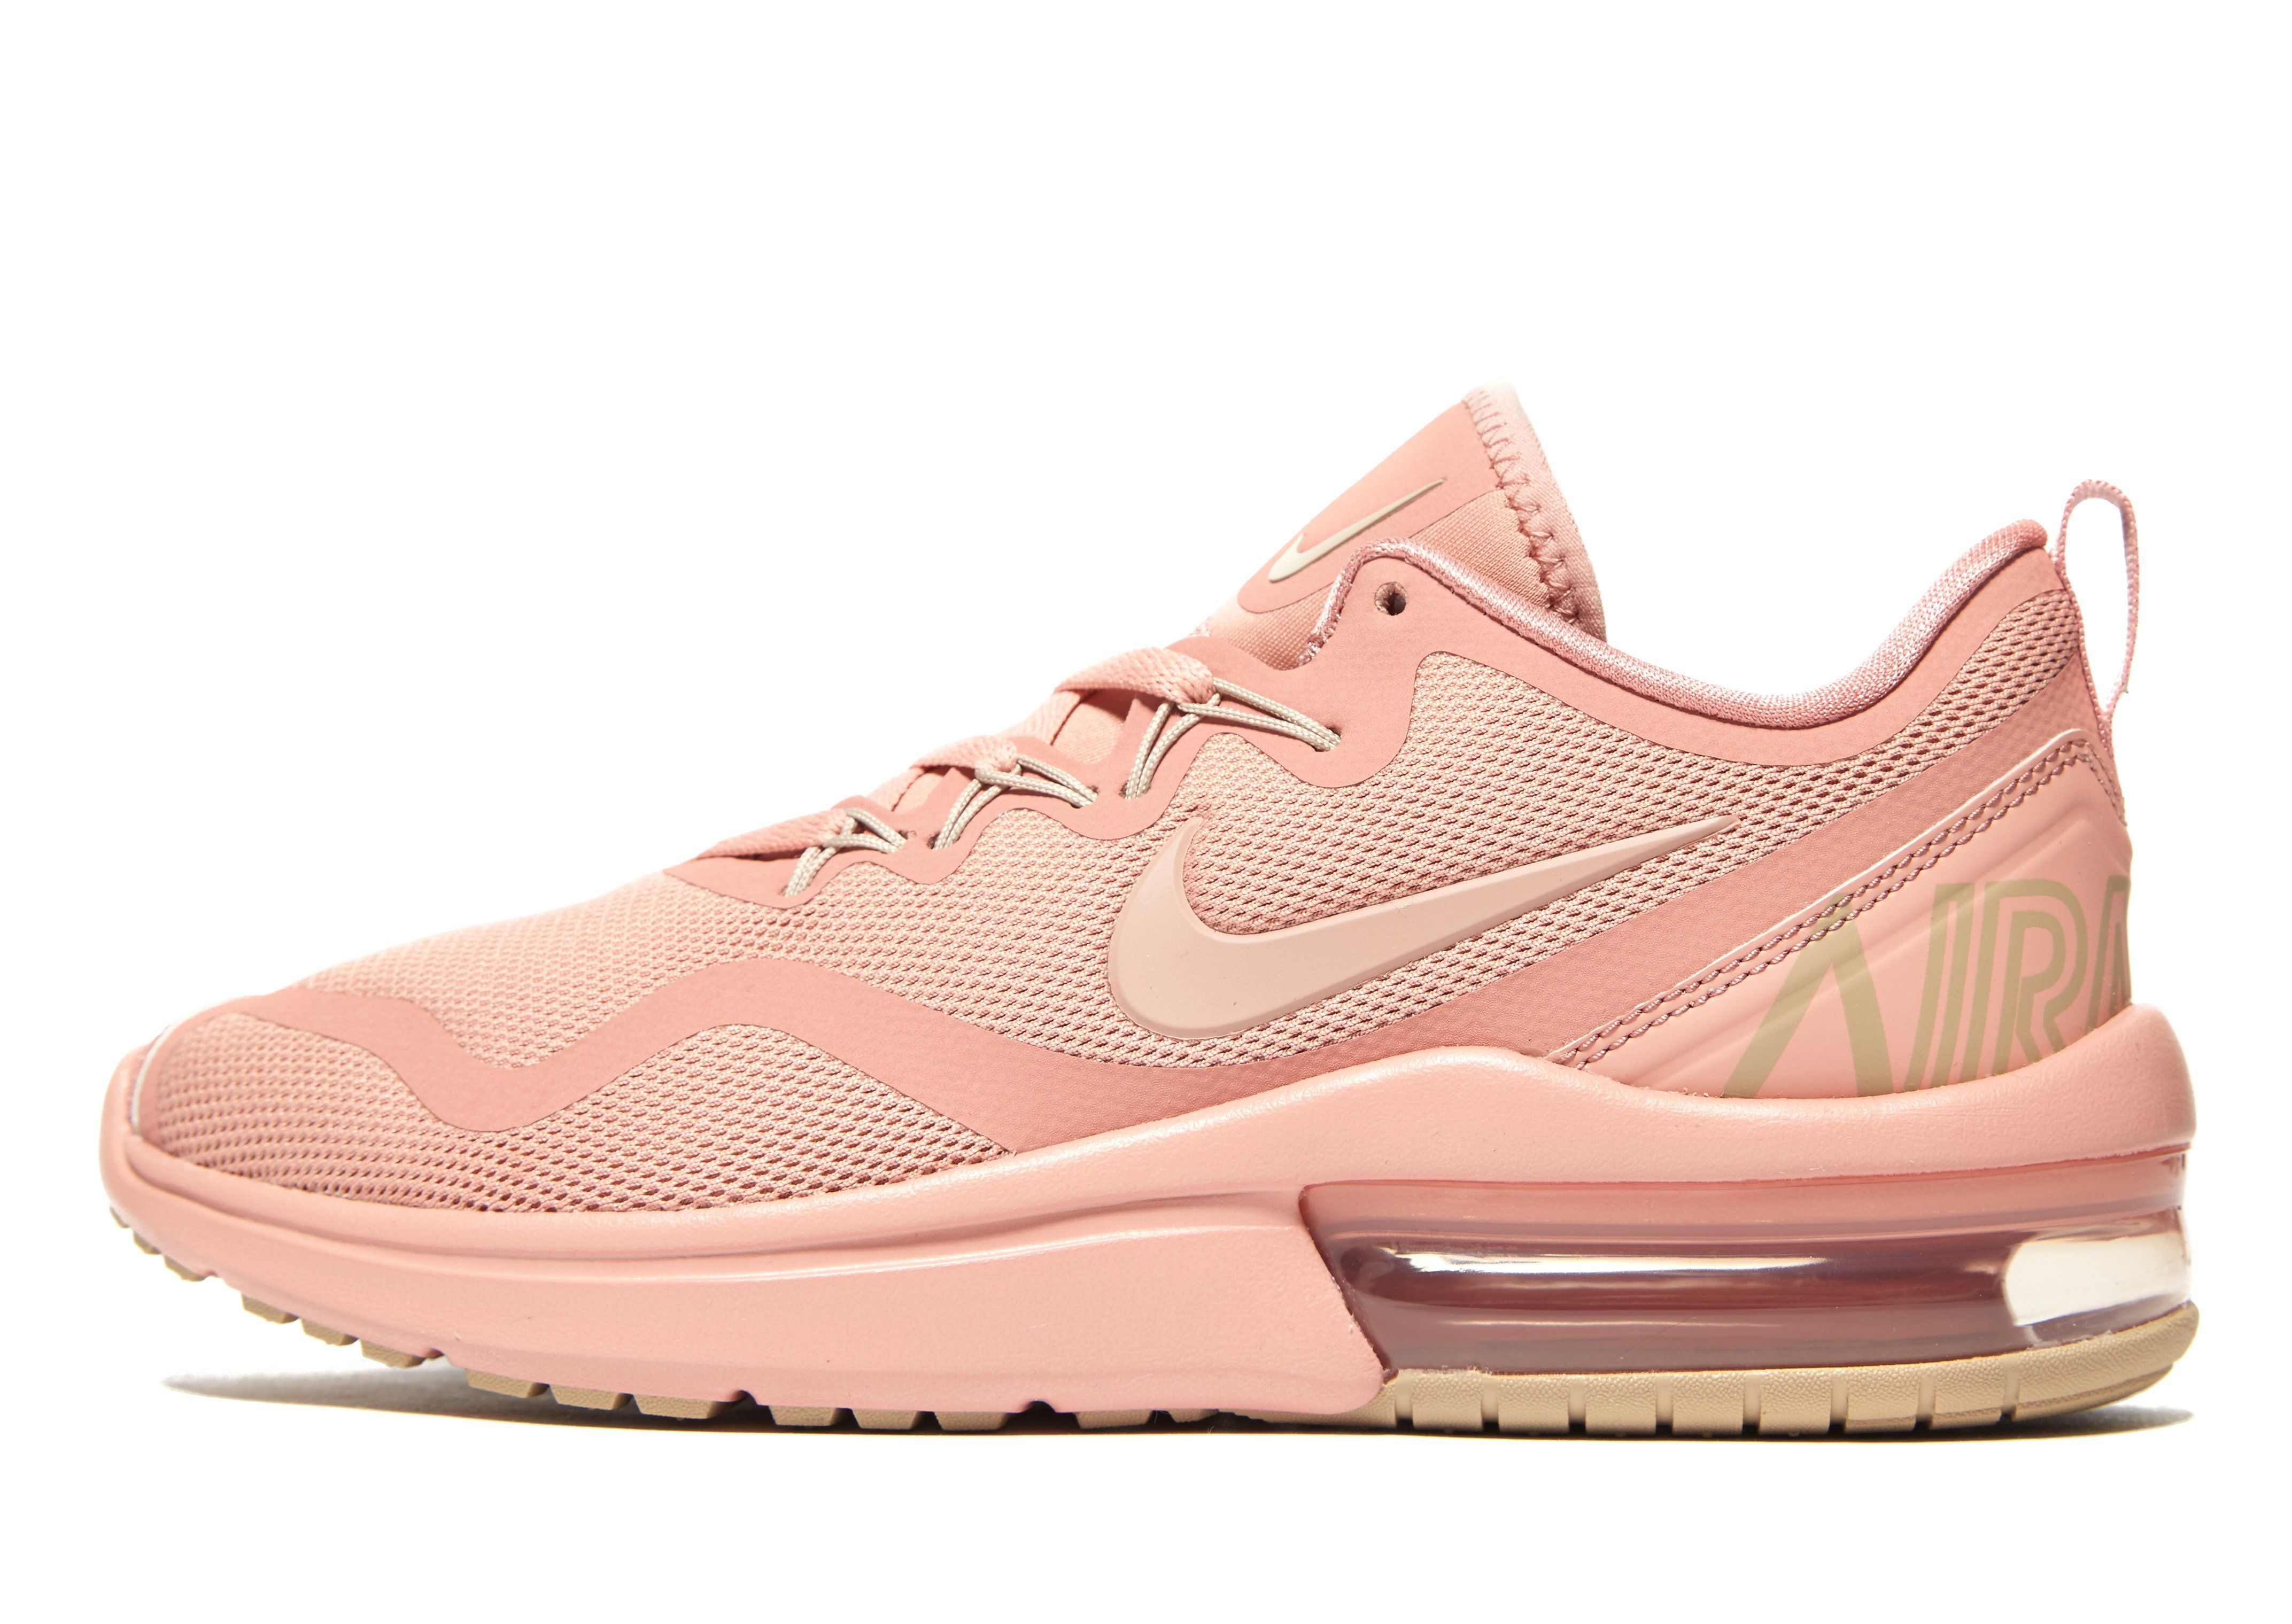 Cooperativa melocotón preocupación  Nike Air Max Fury Women's - Shop online for Nike Air Max Fury Women's with JD  Sports, the UK's leading sports fashion retailer.   Nike air, Nike air max,  Nike